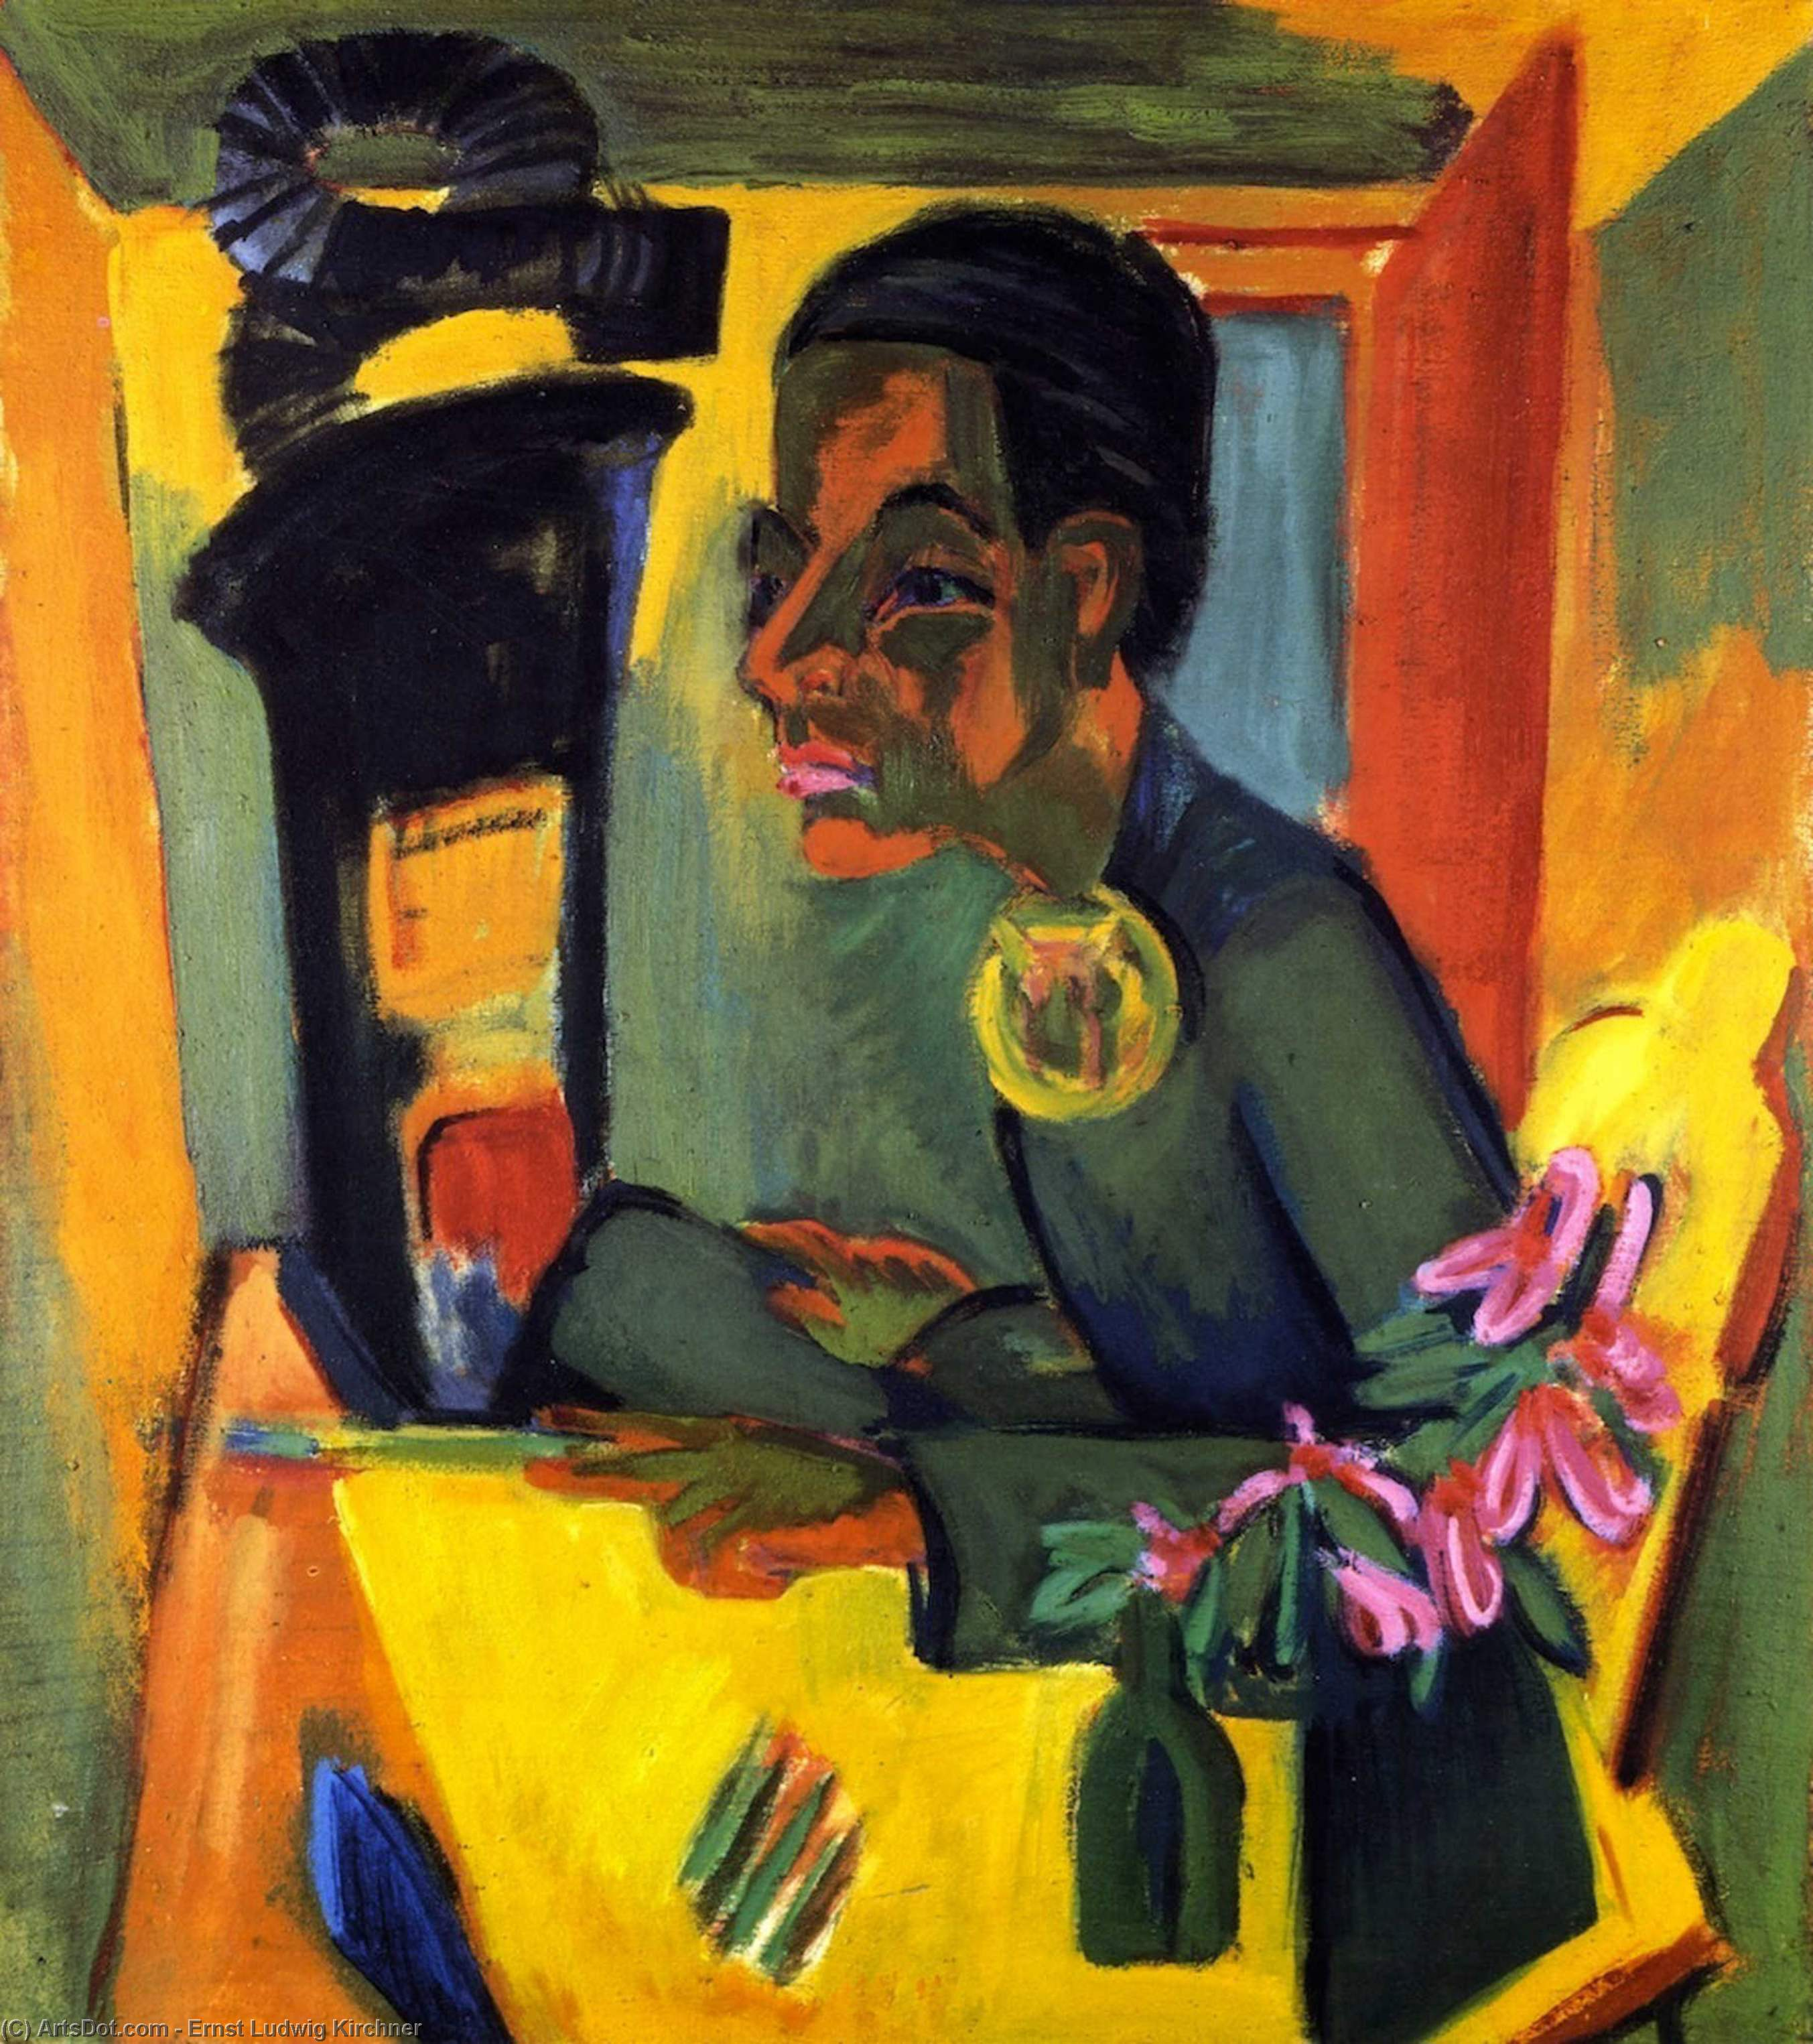 Wikioo.org - The Encyclopedia of Fine Arts - Painting, Artwork by Ernst Ludwig Kirchner - Der Maler, Selbstporträt